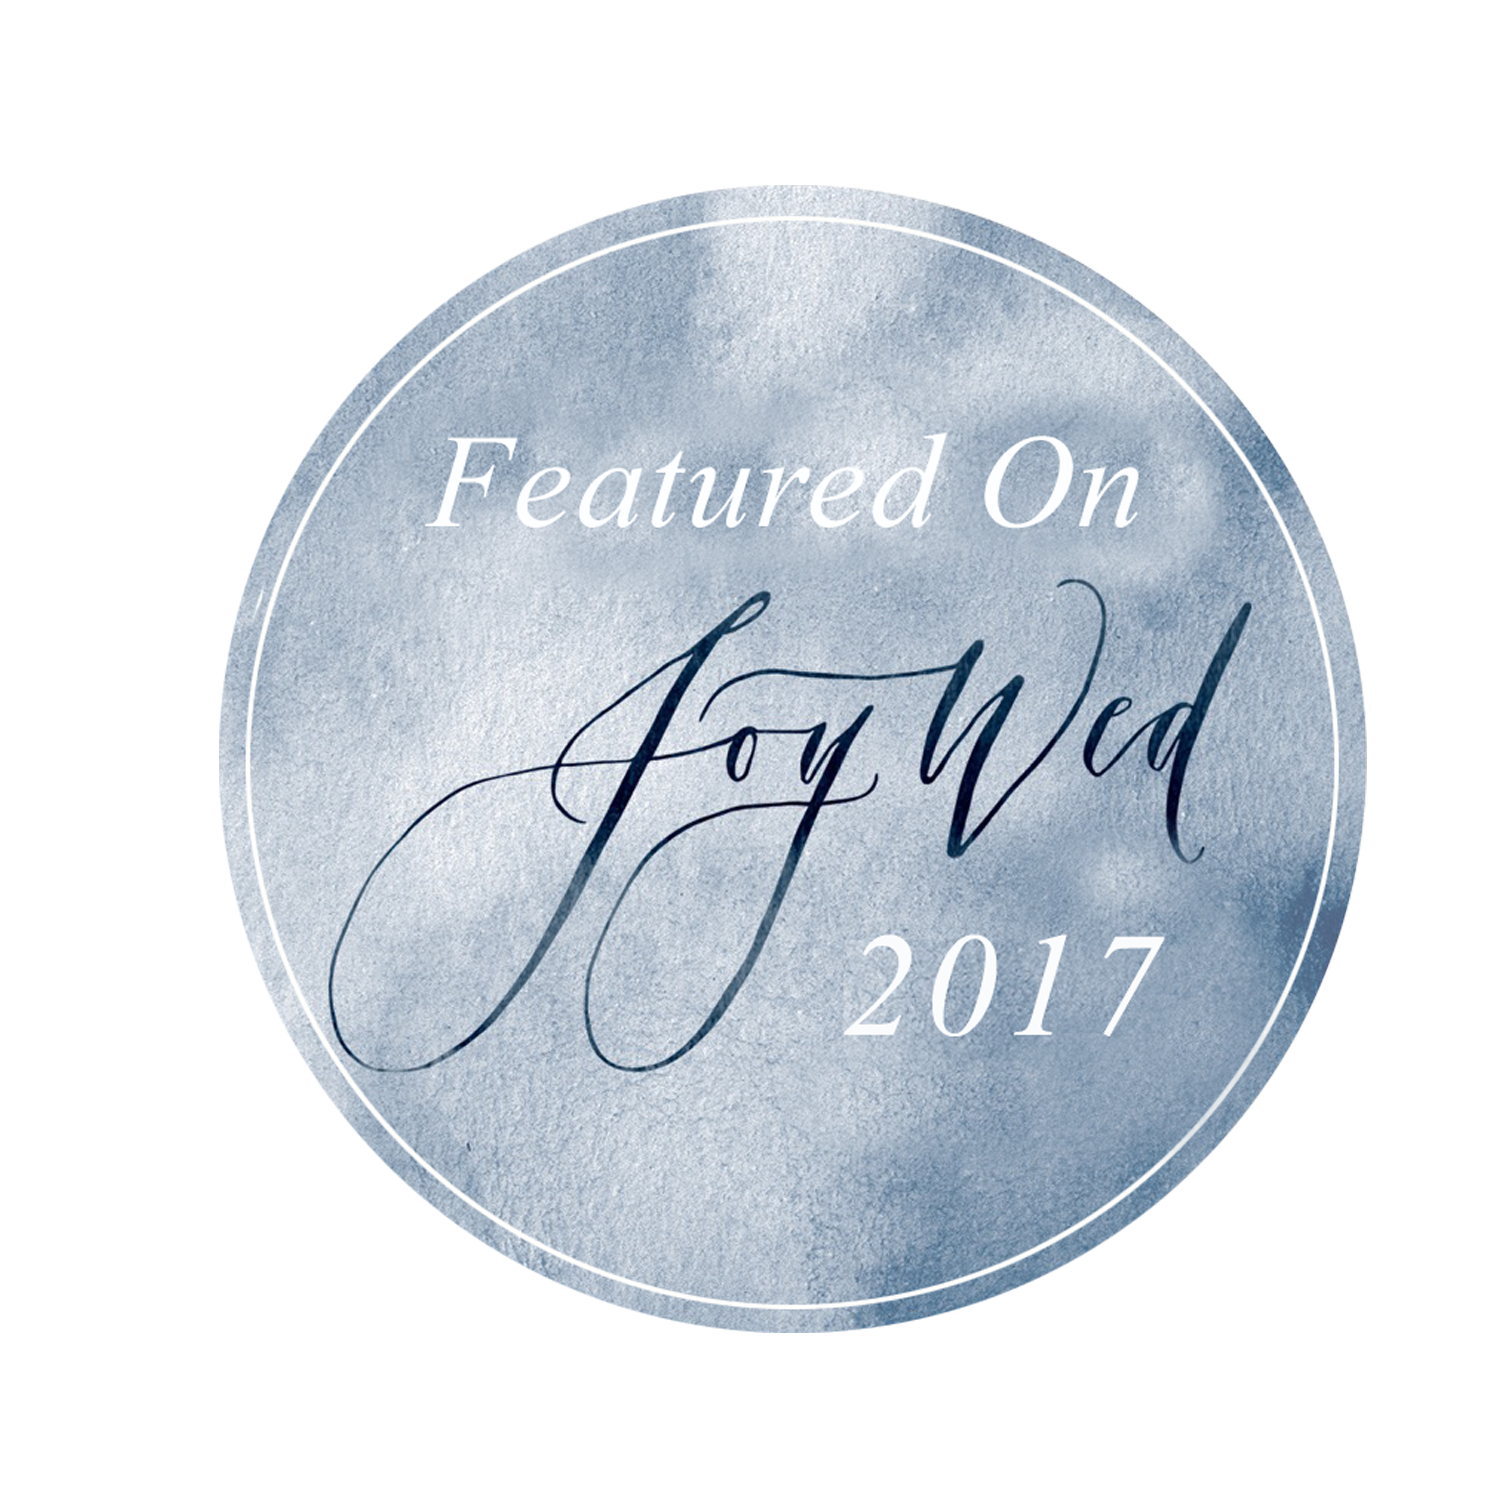 Joy-Wed-Badge-Featured-On-2017.png